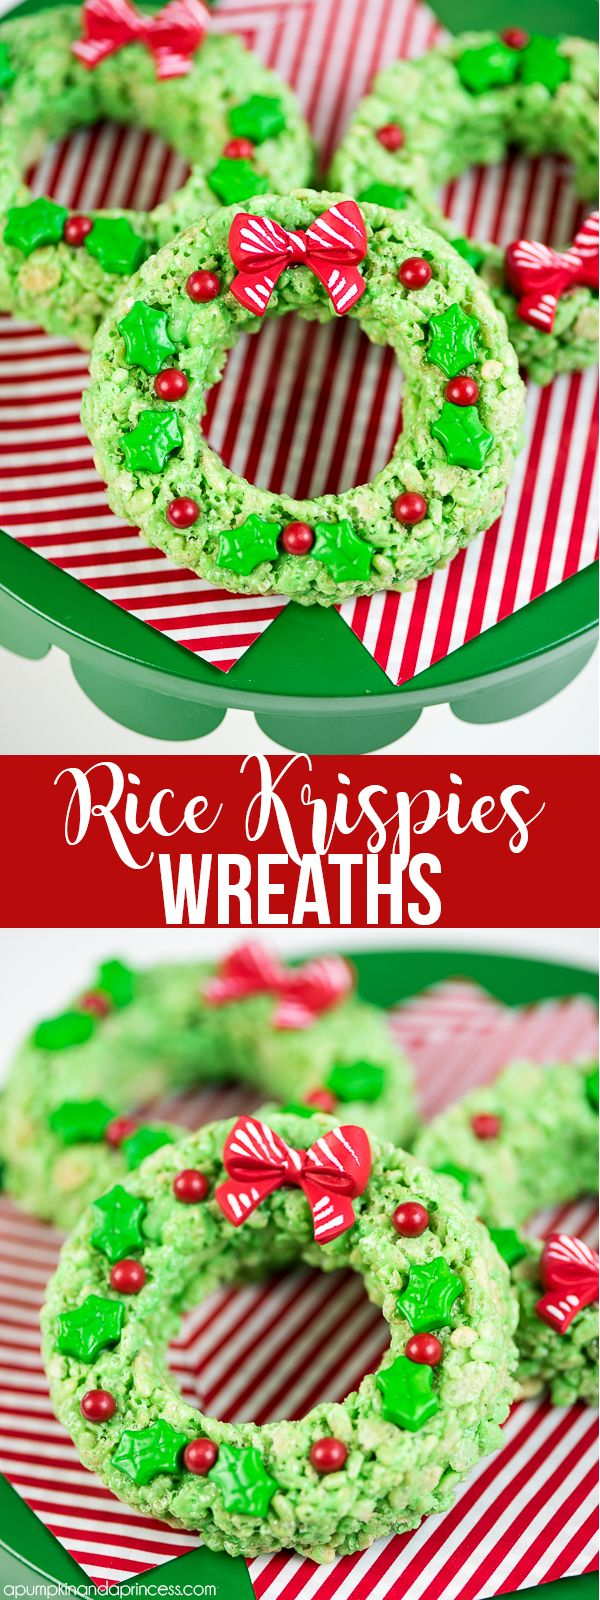 Rice Krispies Wreaths – a holiday spin on the classic Rice Krispies treats recipe. Kids will love these mini Rice Krispies wreaths decorated with holly leaves and berries. from MichaelsMakers A Pumpkin And A Princess